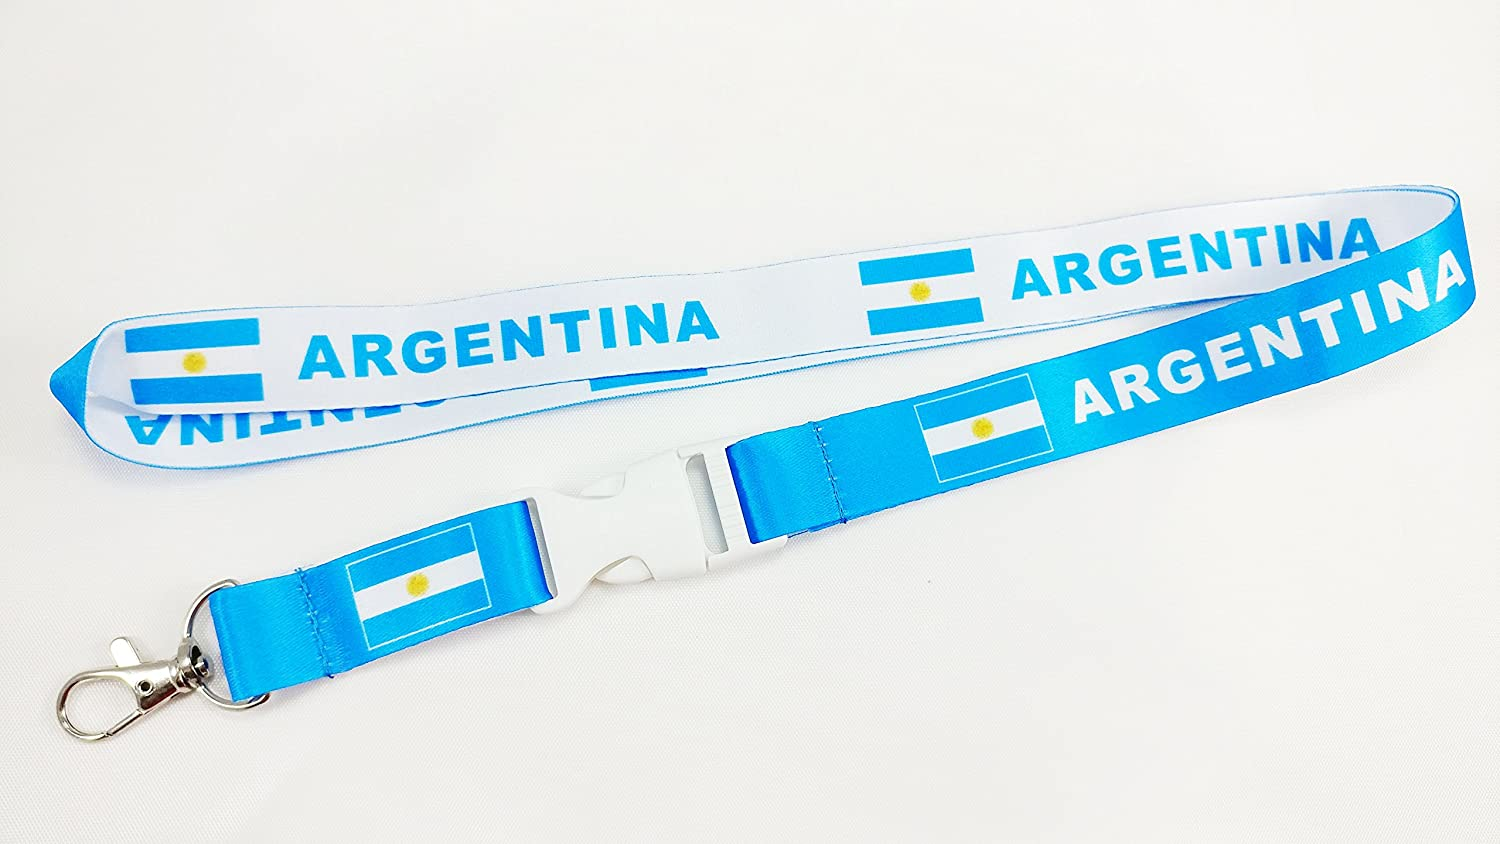 Argentina Flag Reversible Lanyard/Keychain with Clip for Keys or id Badges. Great for Work id Badges, School id Badges, car Keys, and Work Keys